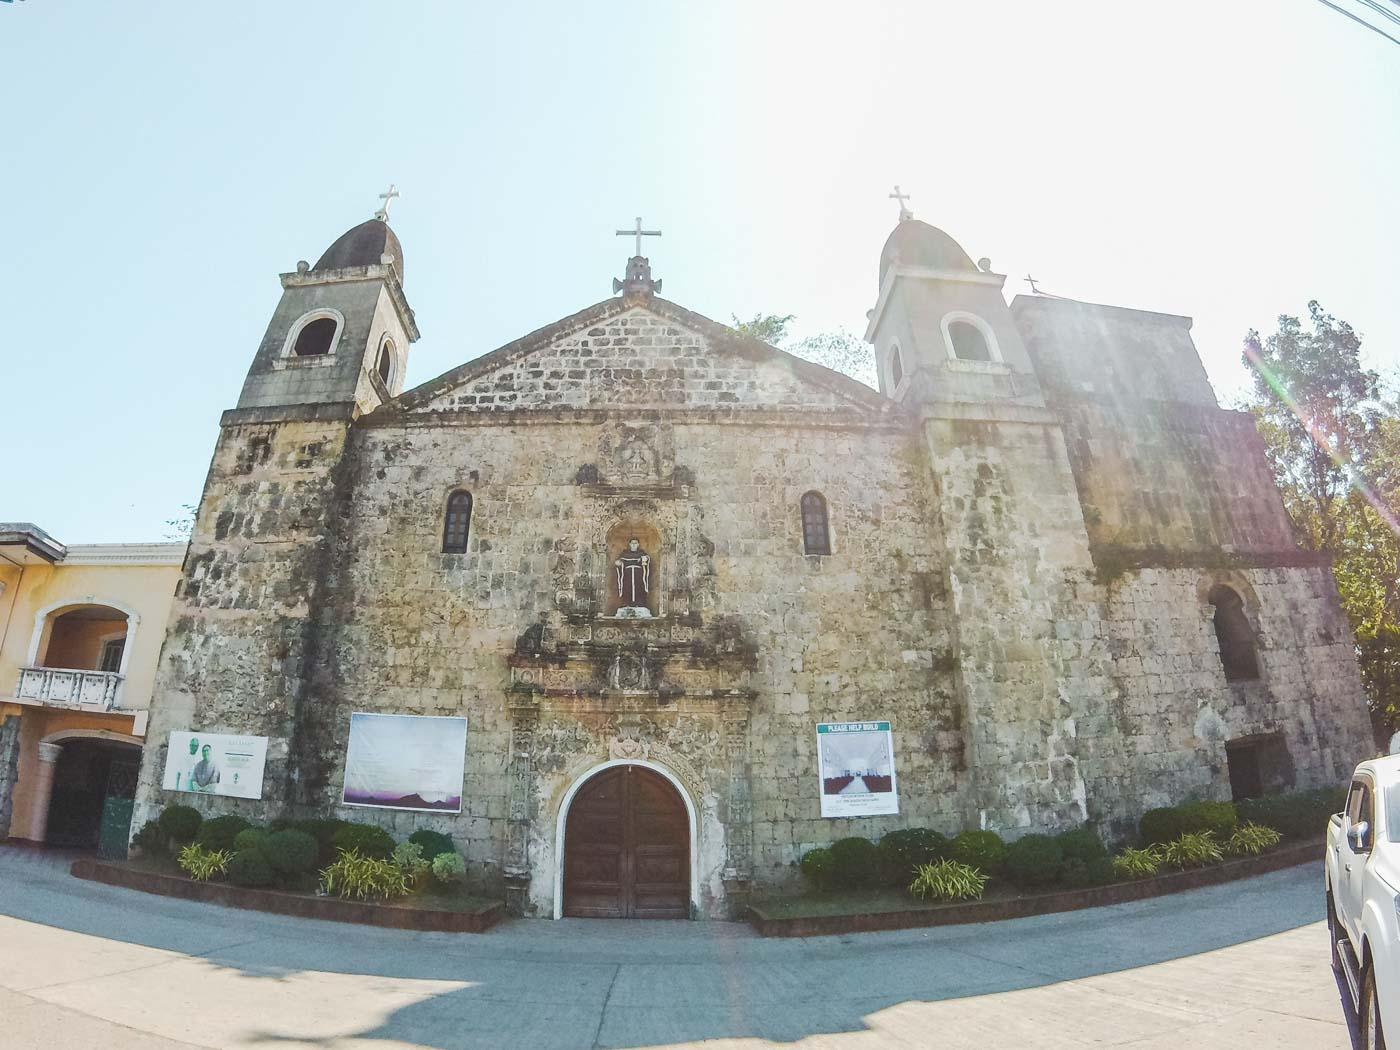 UNIQUE. The church's facade is adorned with intricate Latin-American design and interior made of colorful stone mosaic portraying the Passion of Christ which took decades to finish. Photo by Carl Don Berwin/Rappler